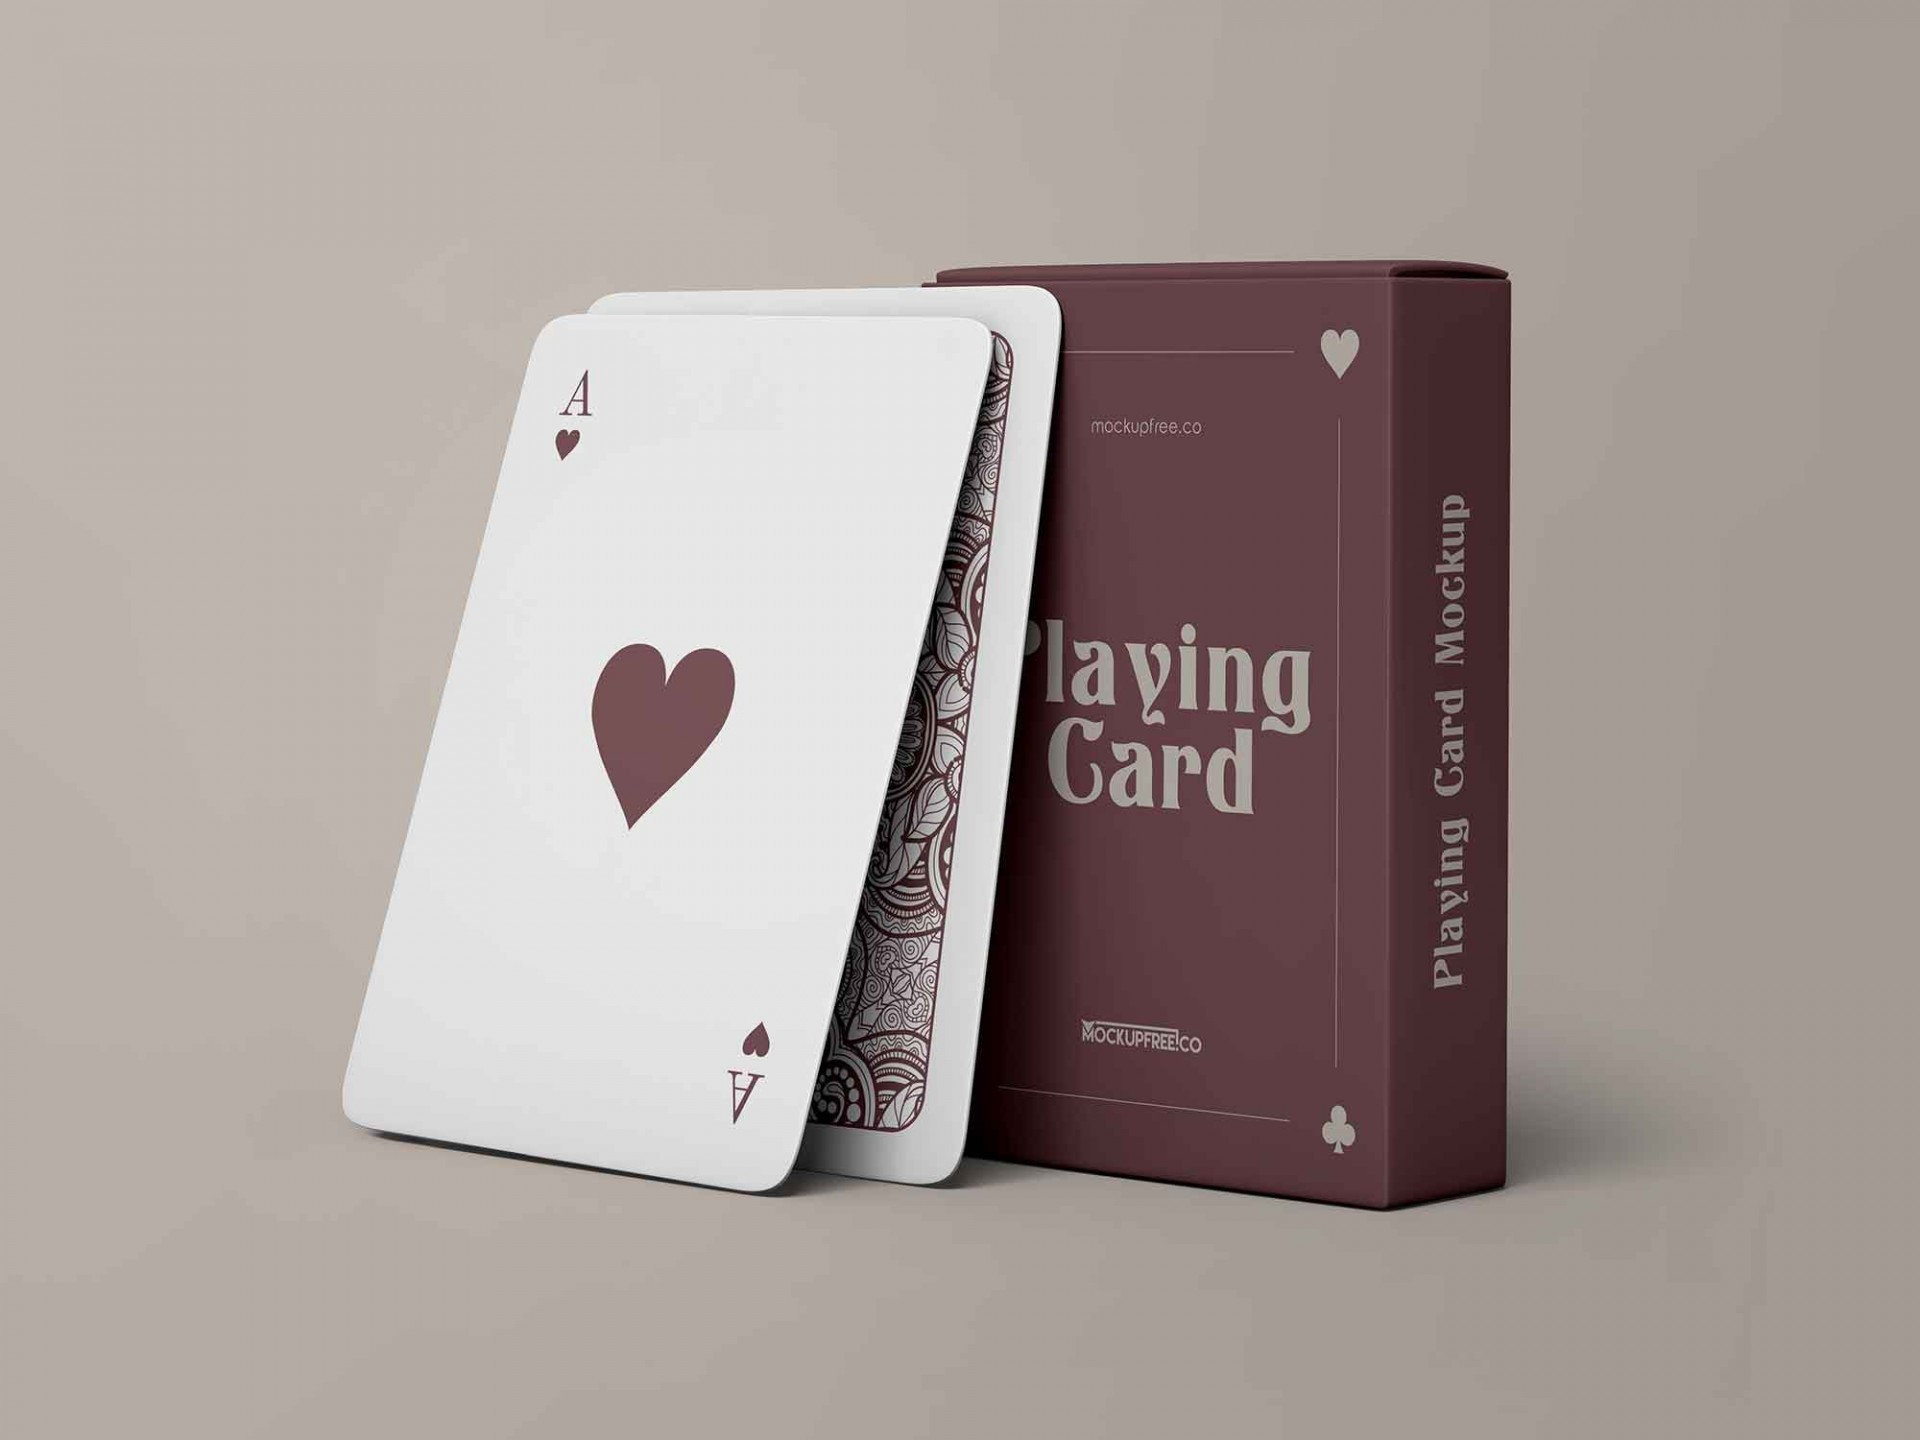 006 Frightening Playing Card Template Free Download Highest Clarity  Blank1920